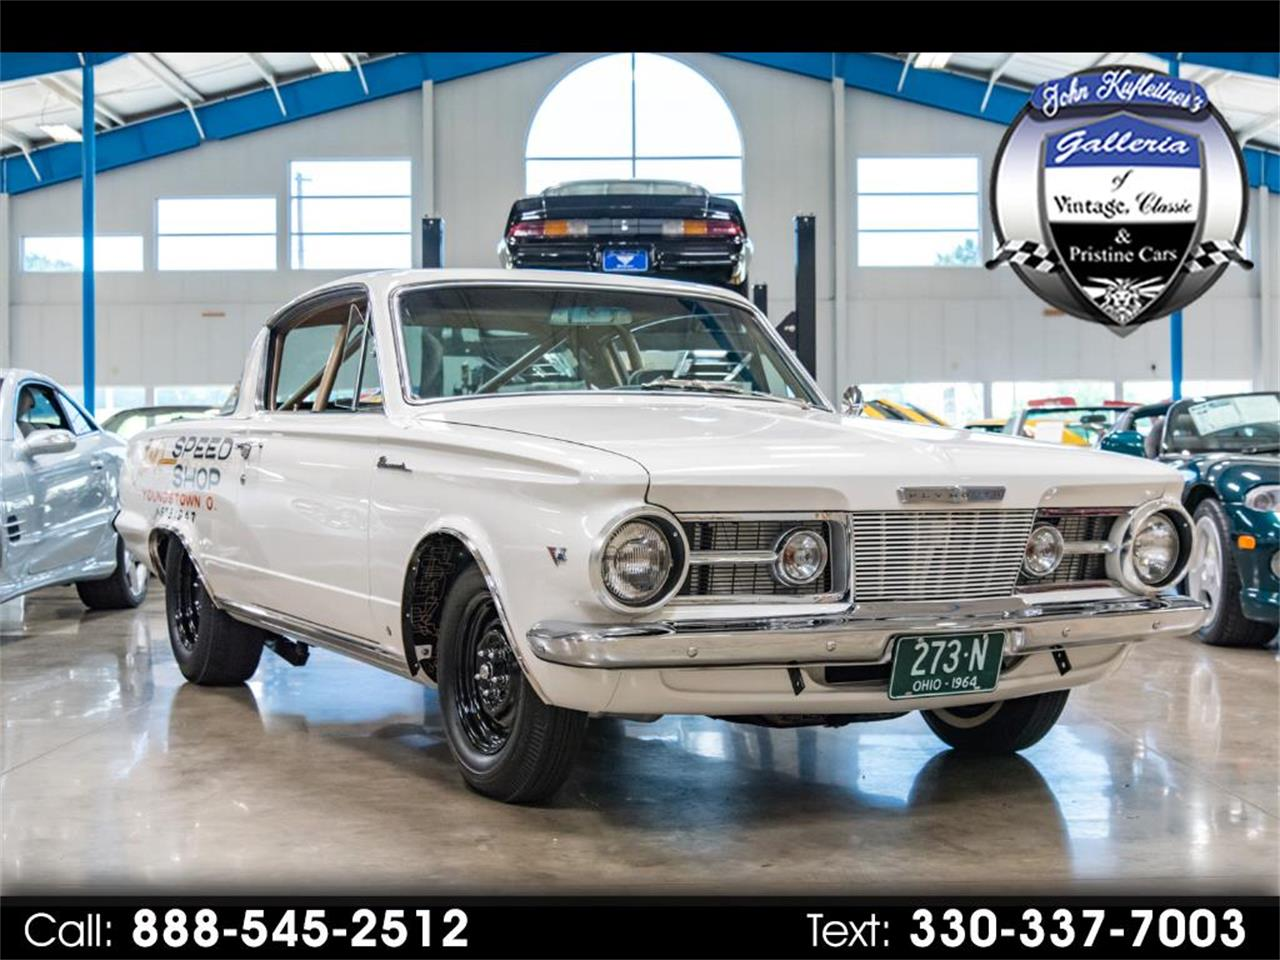 For Sale: 1964 Plymouth Barracuda in Salem, Ohio